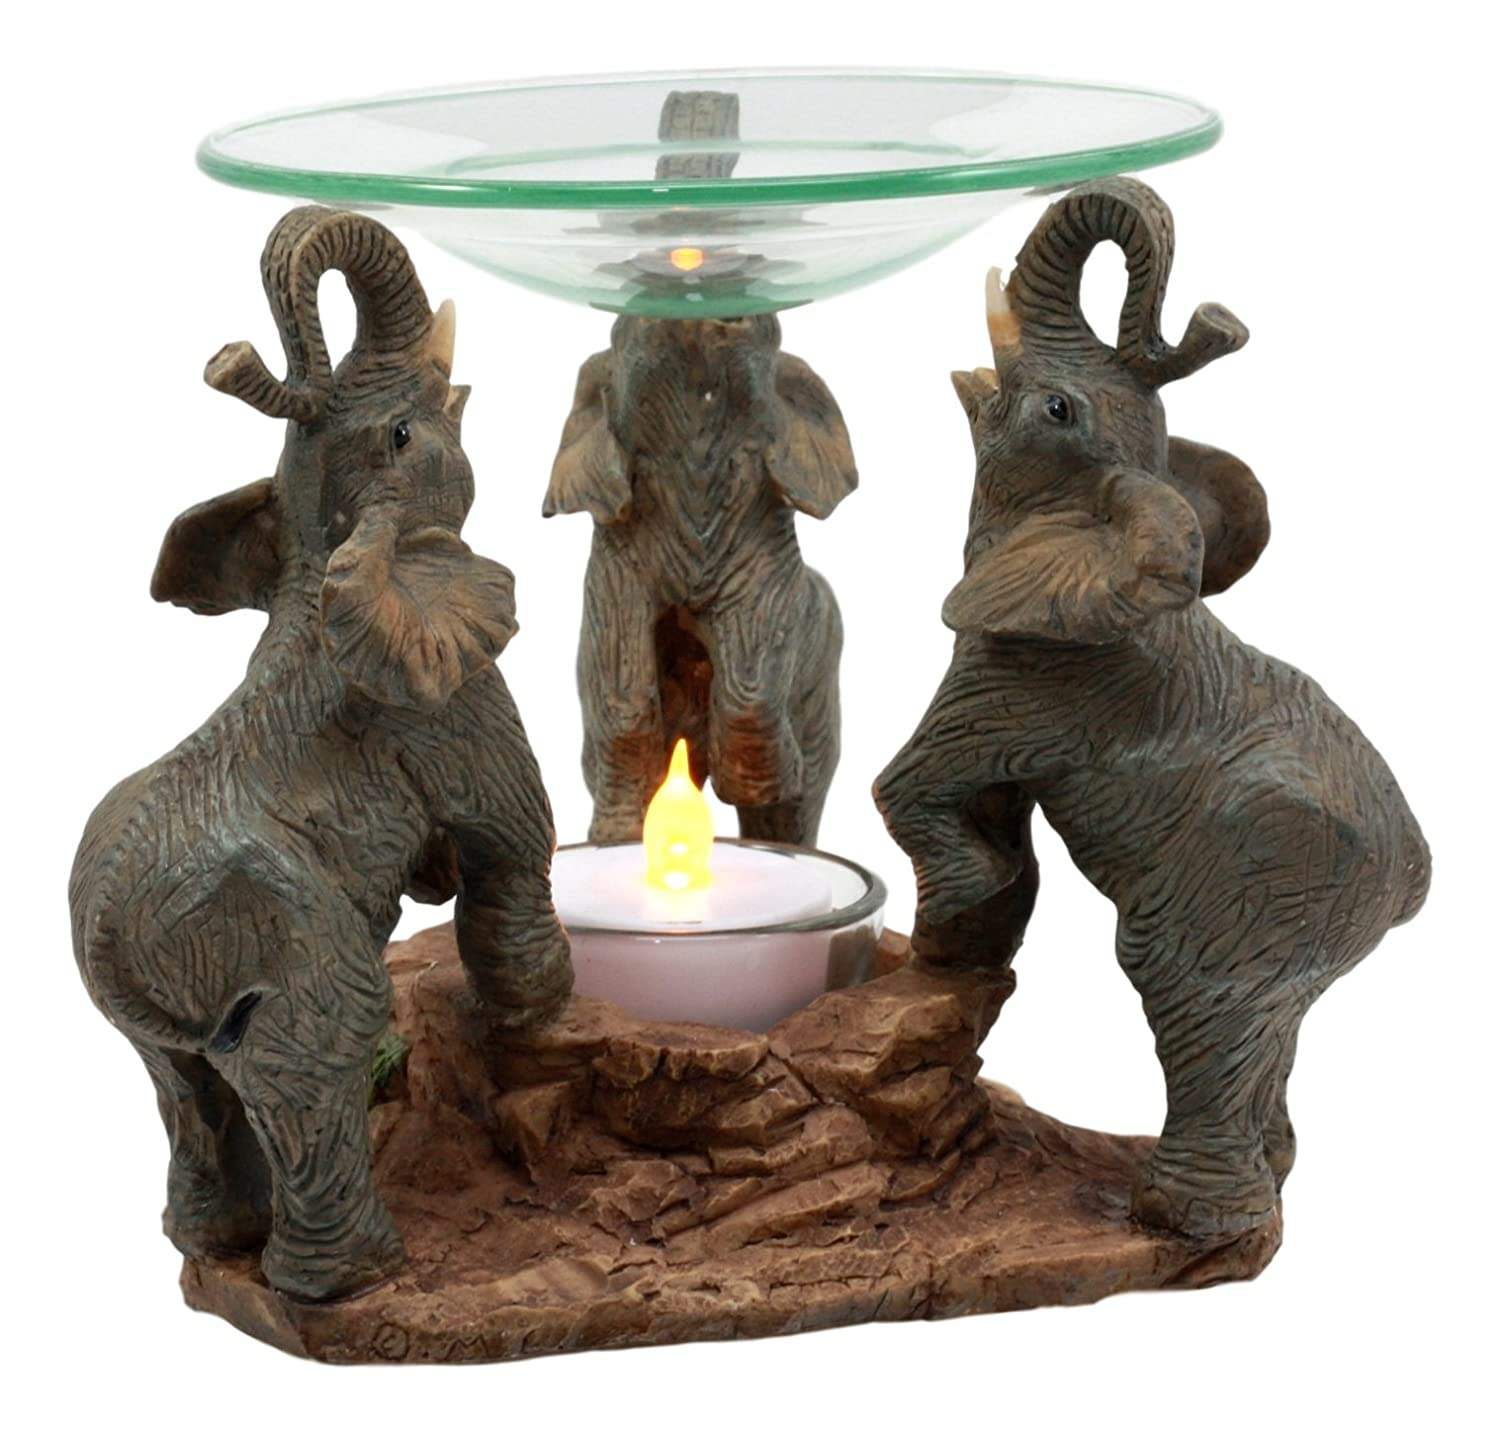 Ebros Trio African Savanna Elephants Trumpeting Oil Warmer Statue Wax Tart Burner Aroma Scent Diffuser Resin Safari Themed Decorative Figurine